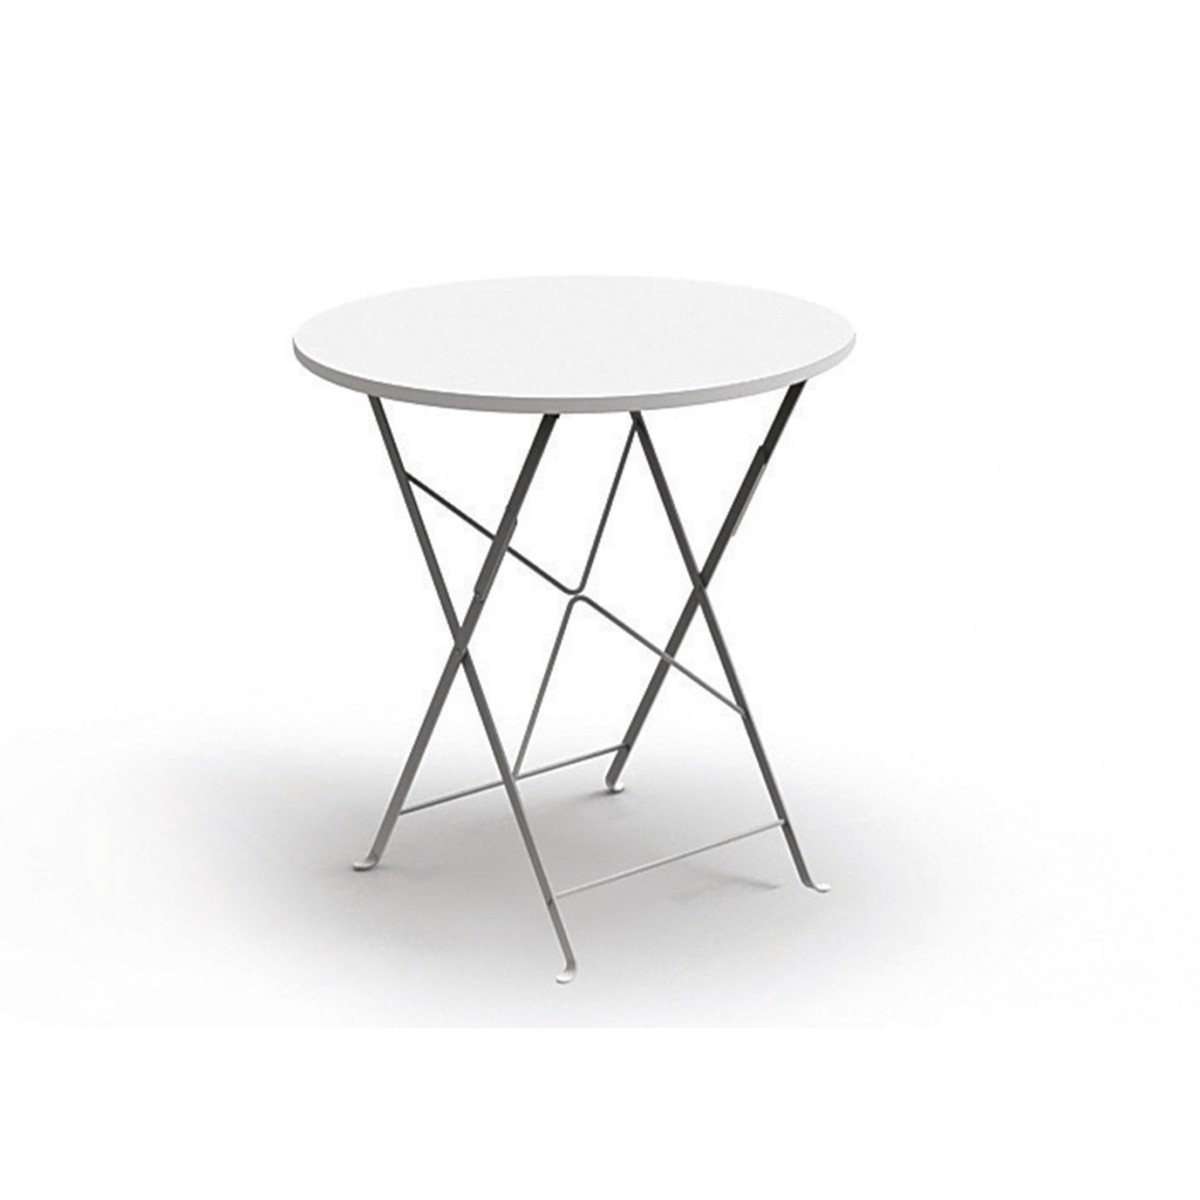 Table ronde pliable pour terrasse balcon cuisine pretty for Table exterieur pliante